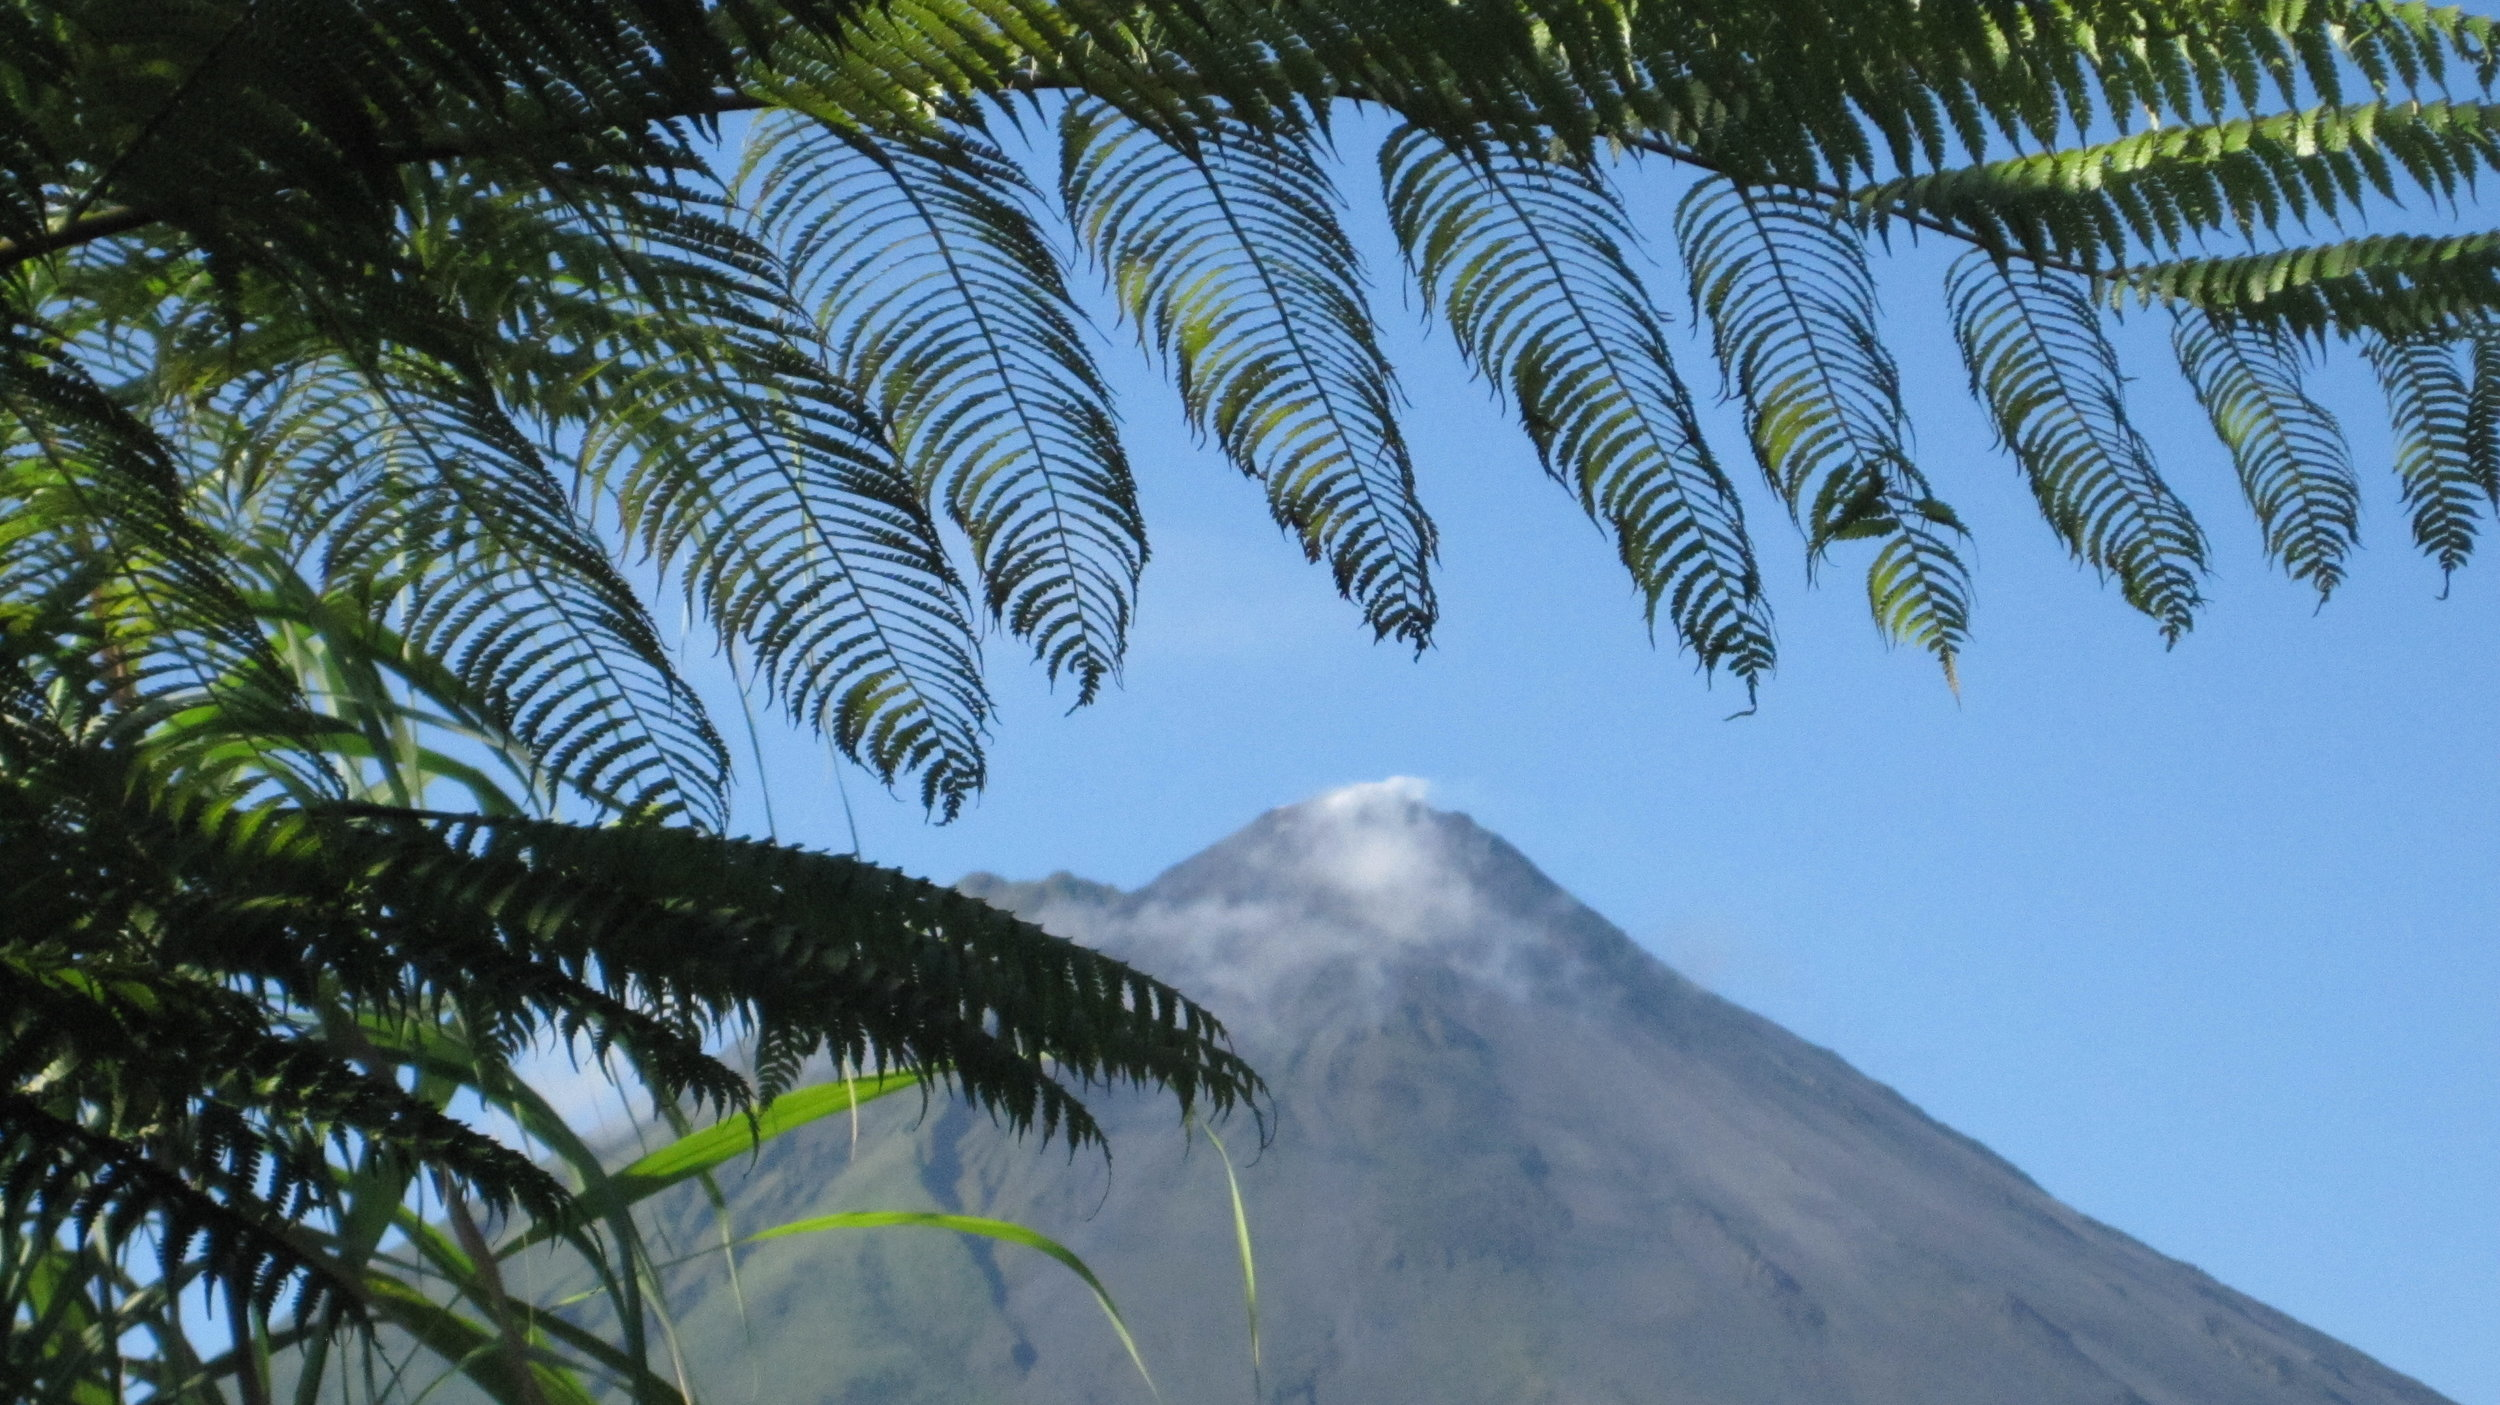 Arenal Volcano, as seen from our hotel room